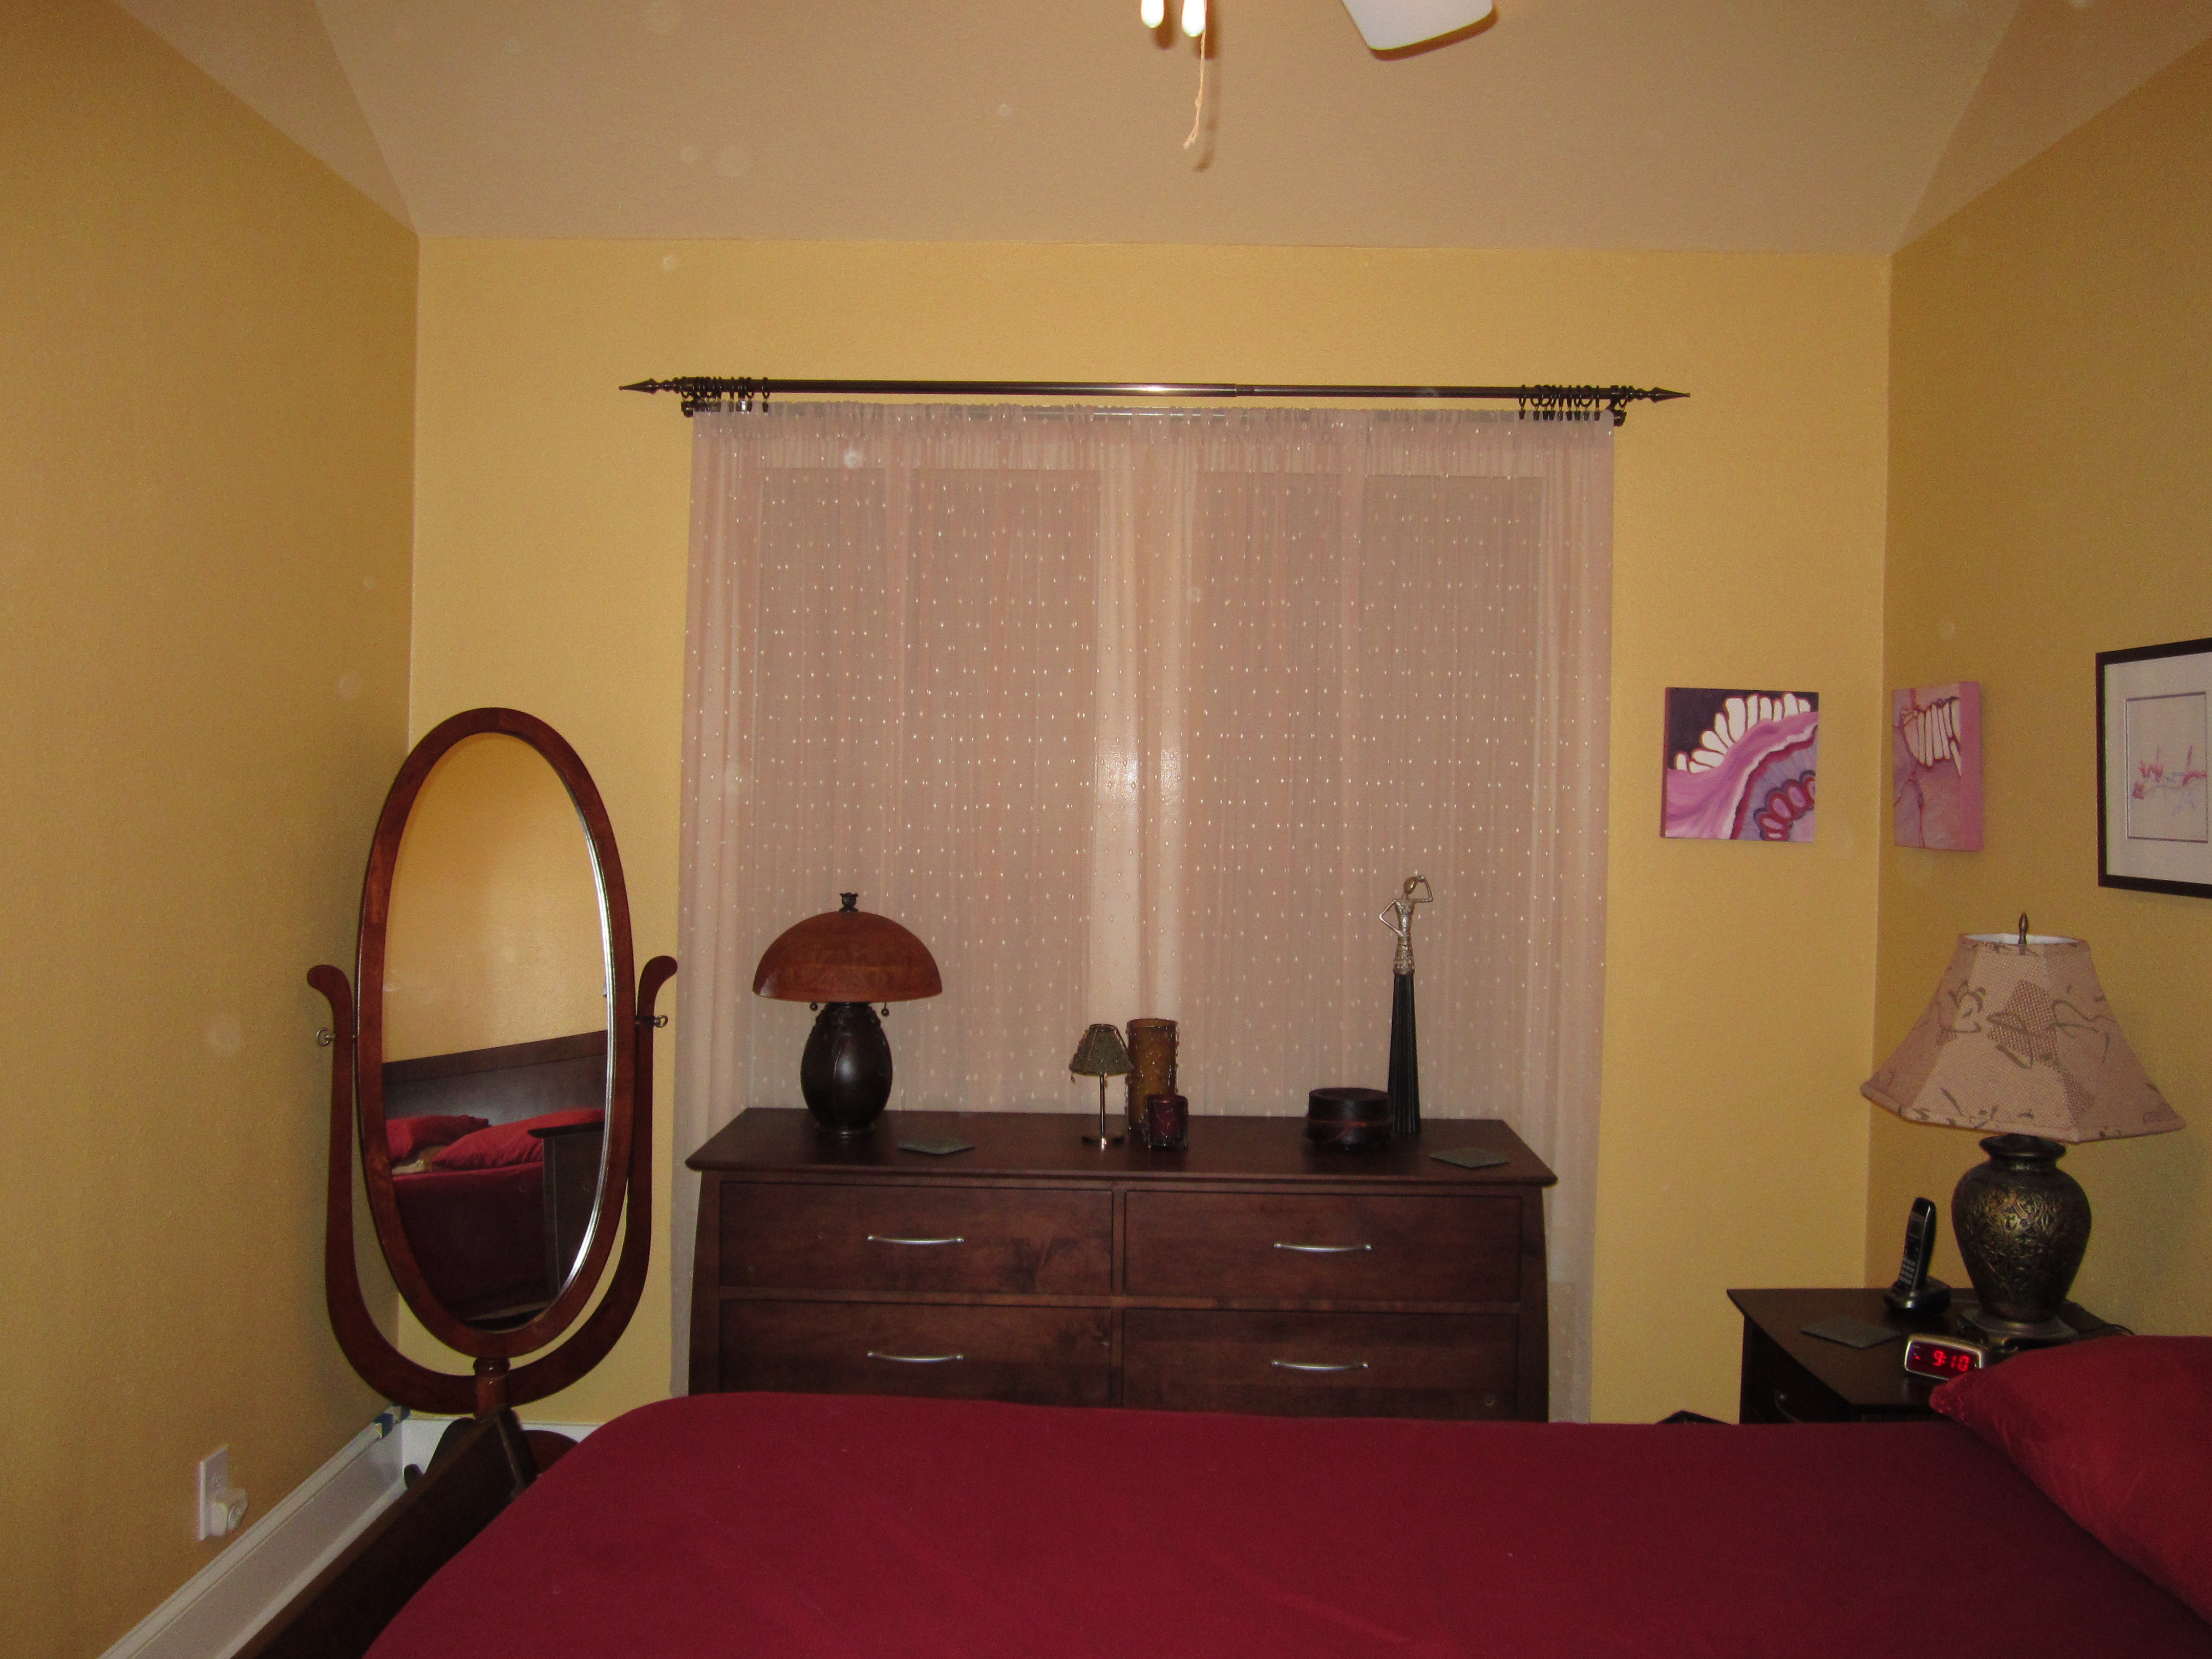 Bedroom after painting - window wall with sheers installed